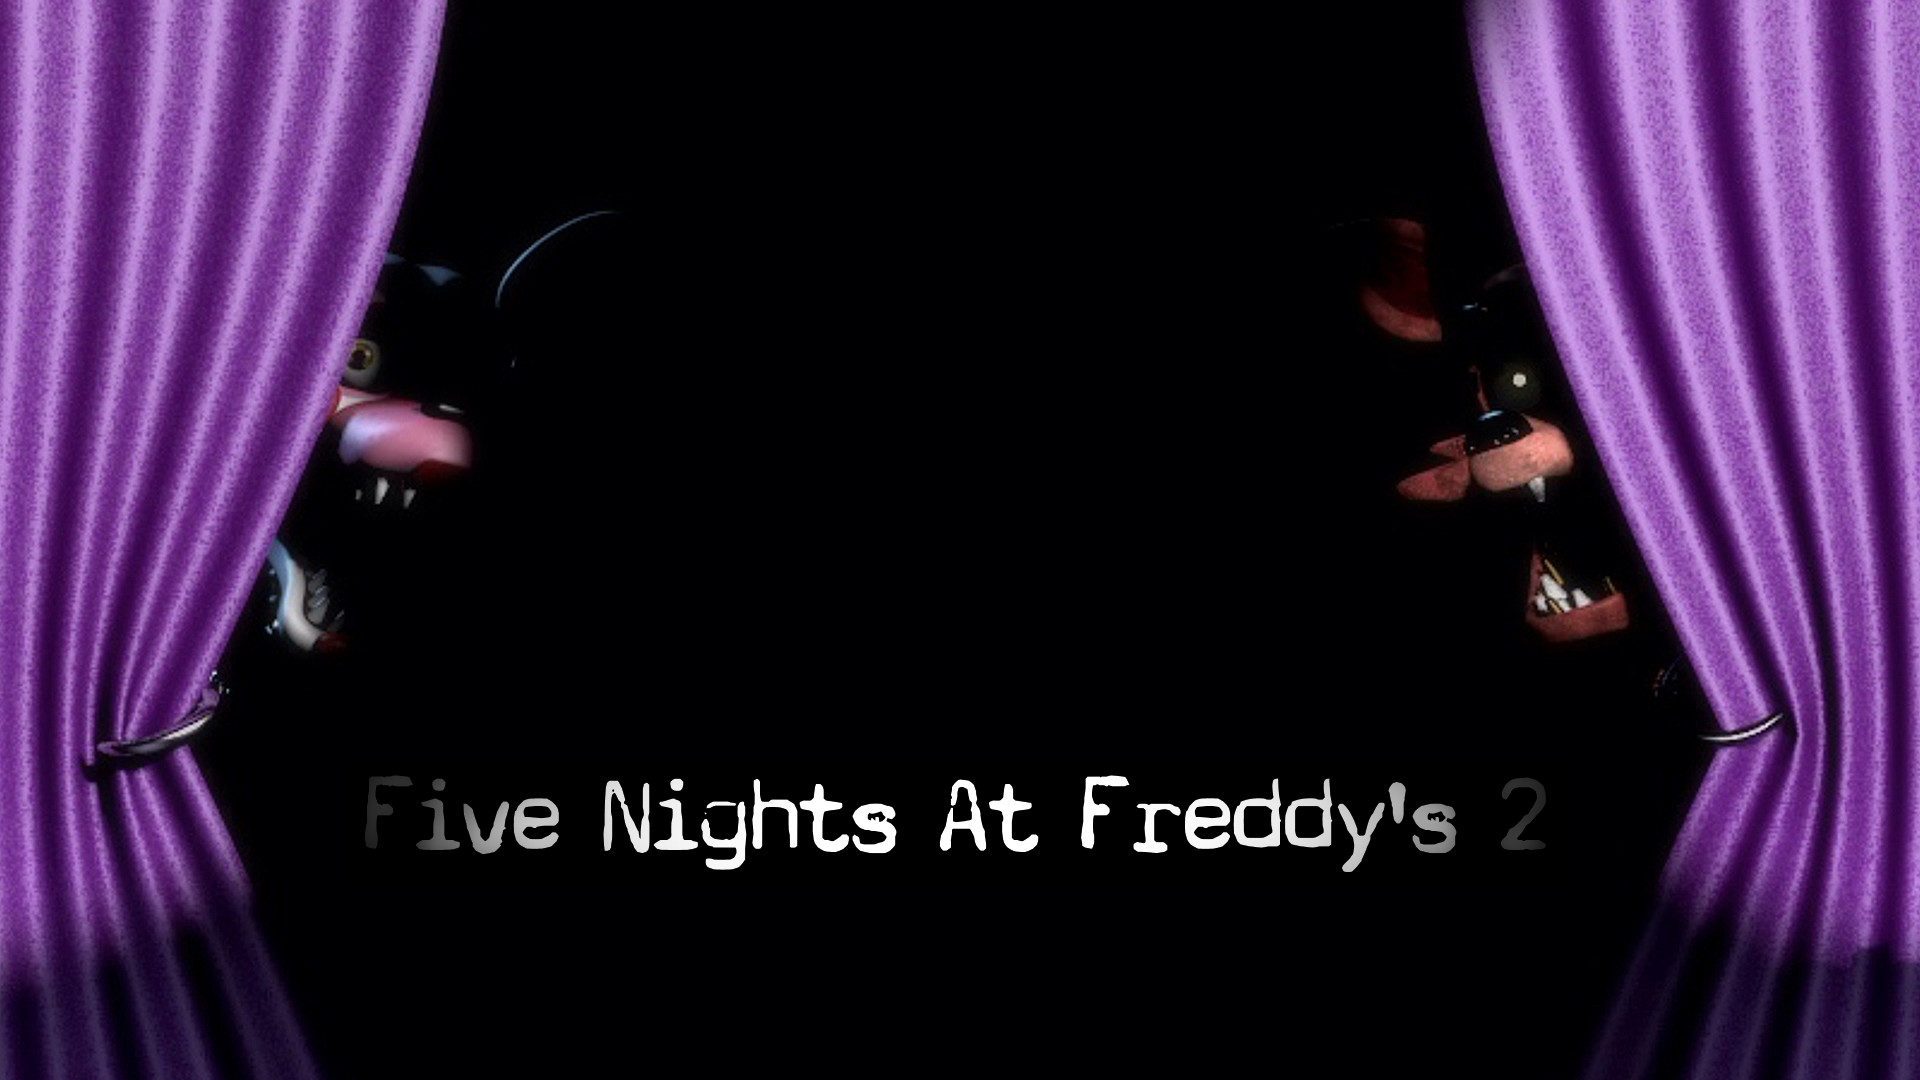 1920x1080 Five Nights At Freddys 2 Official Poster #2 by  ProfessorAdagio.deviantart.com on